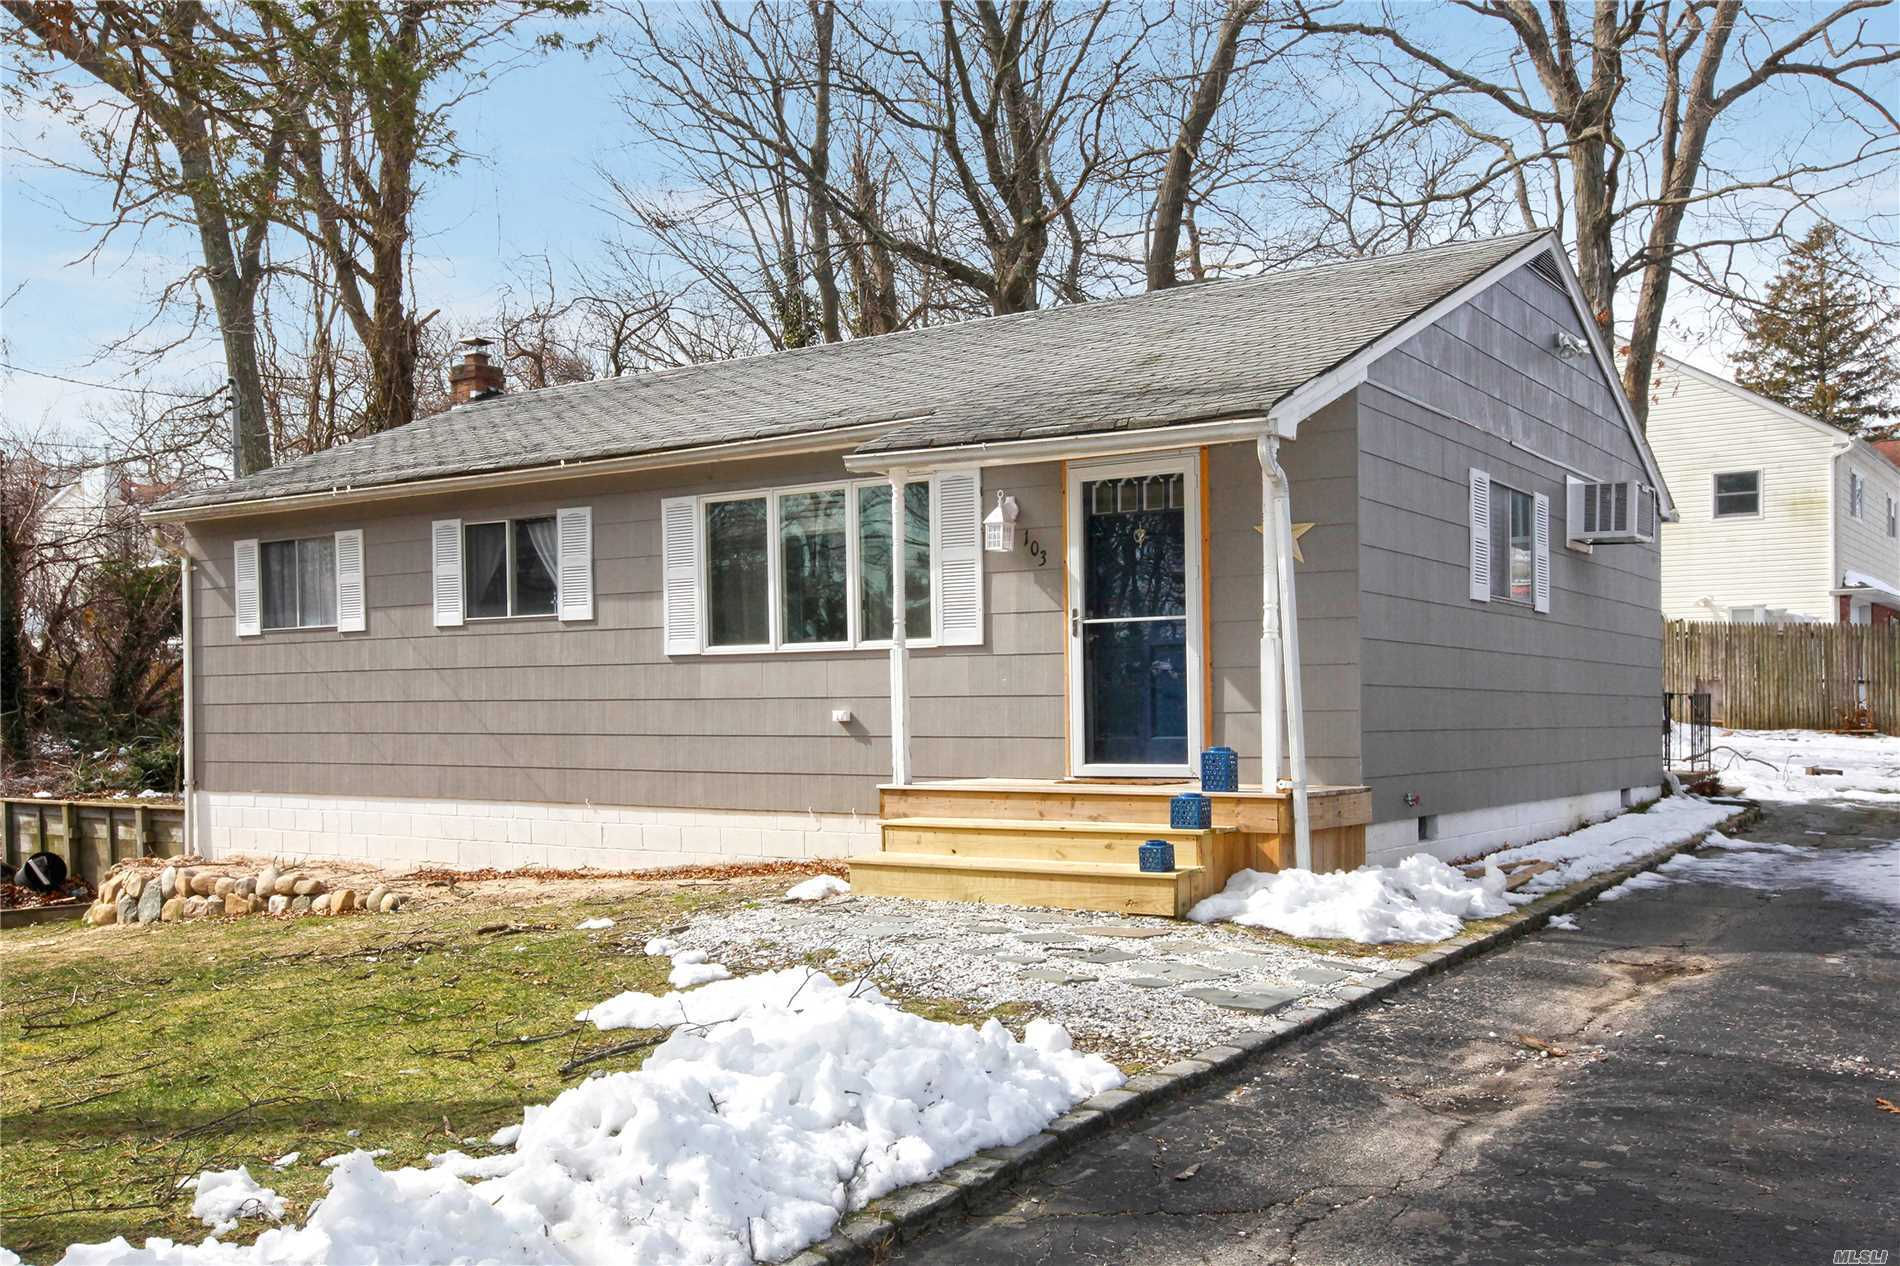 103 Maple Rd - Rocky Point, New York